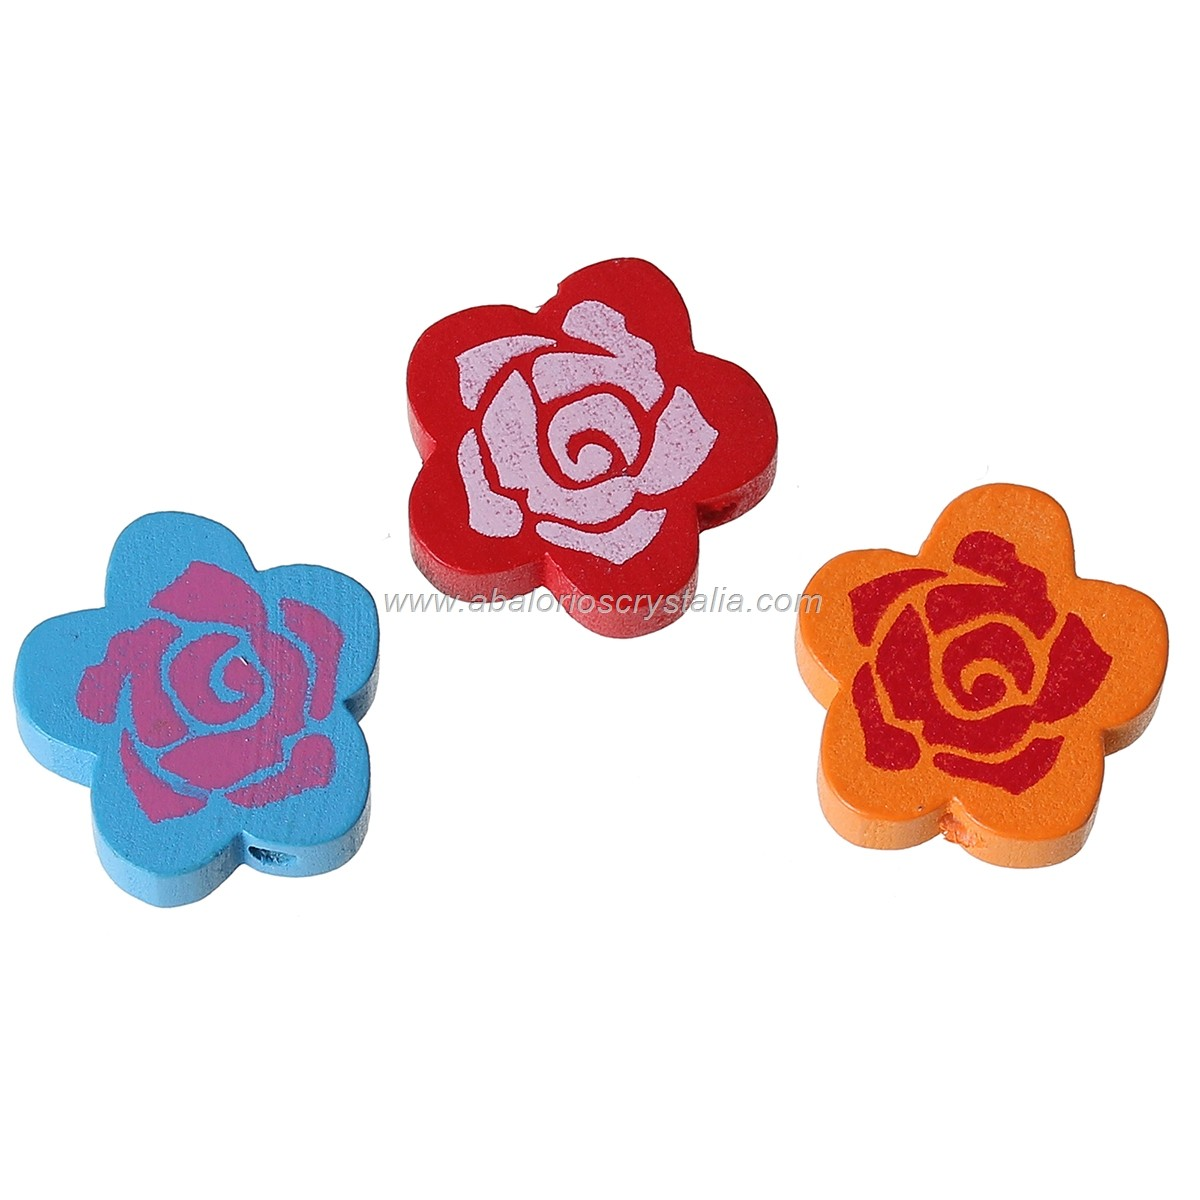 5 FLORES DE MADERA MIX DE COLORES 20x19mm